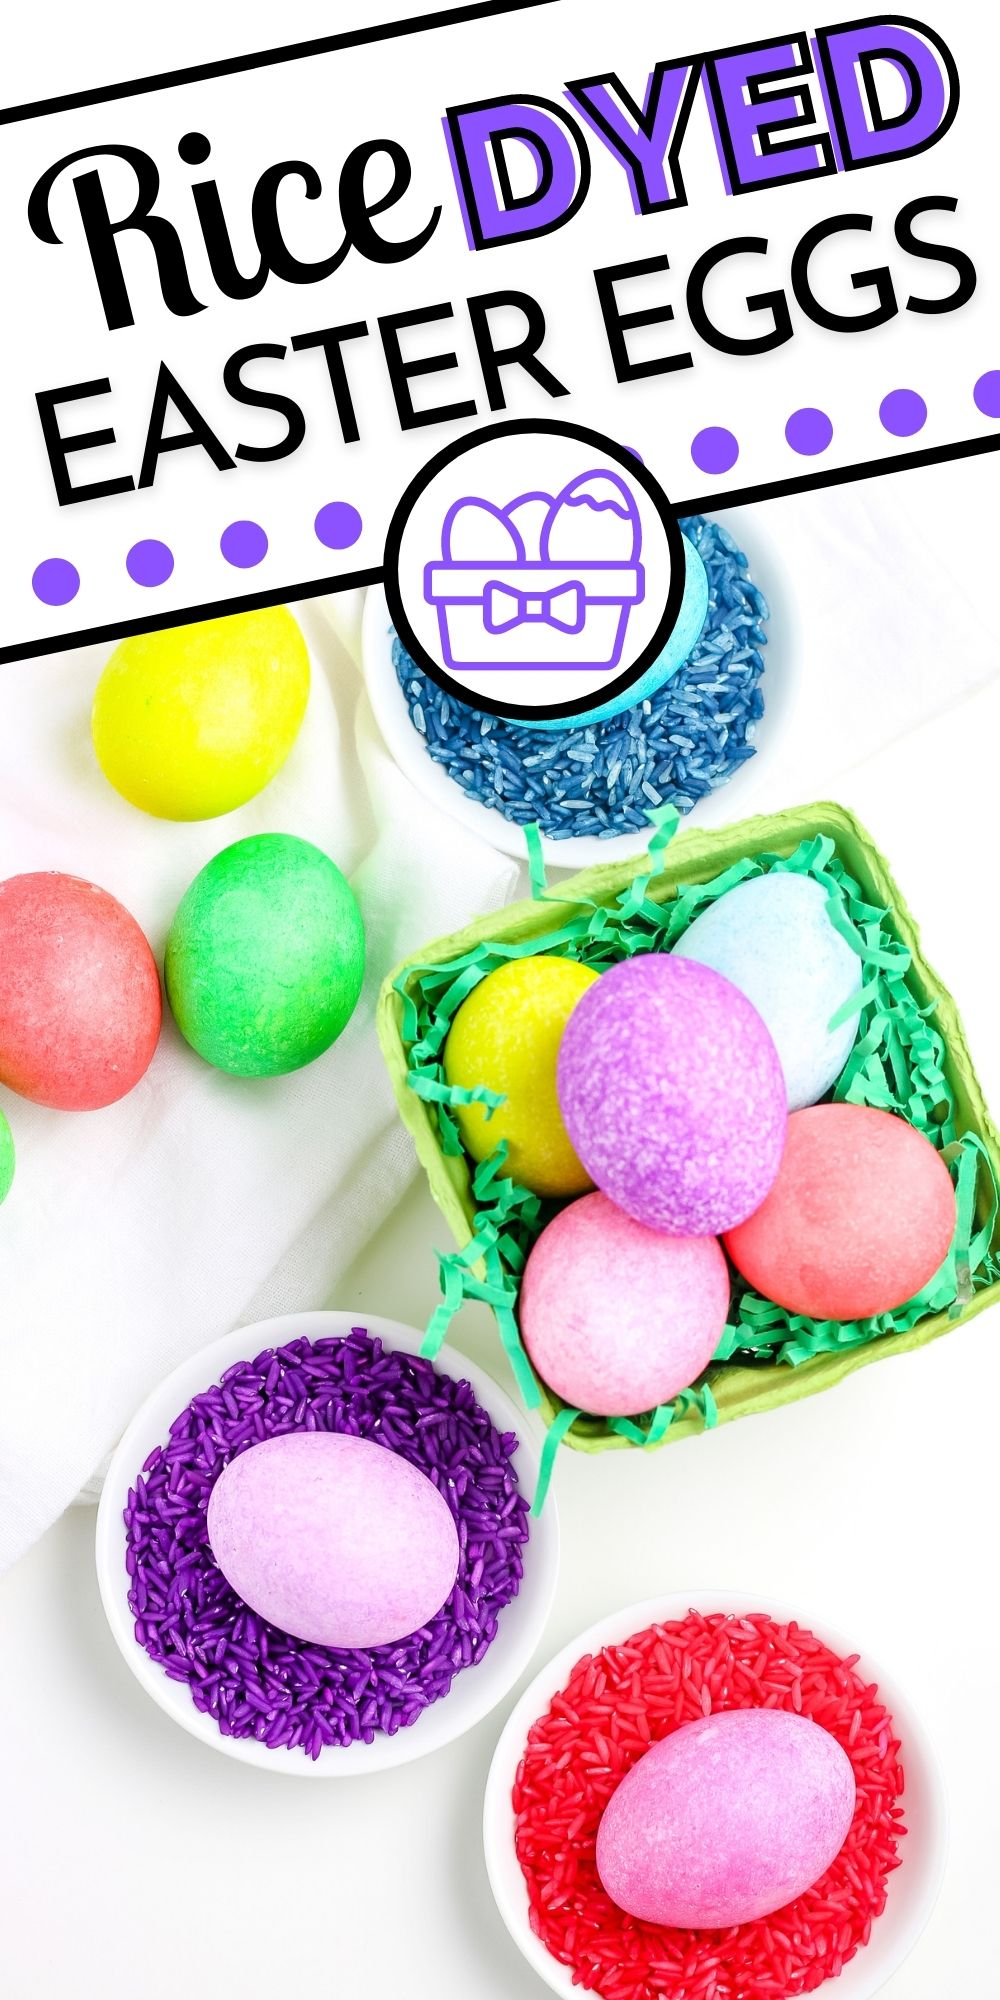 In this easy tutorial, we show How to Dye Easter Eggs with Food Coloring and Rice. To do so, you'll need hard-boiled eggs, rice, and food coloring. via @easybudgetrecipes